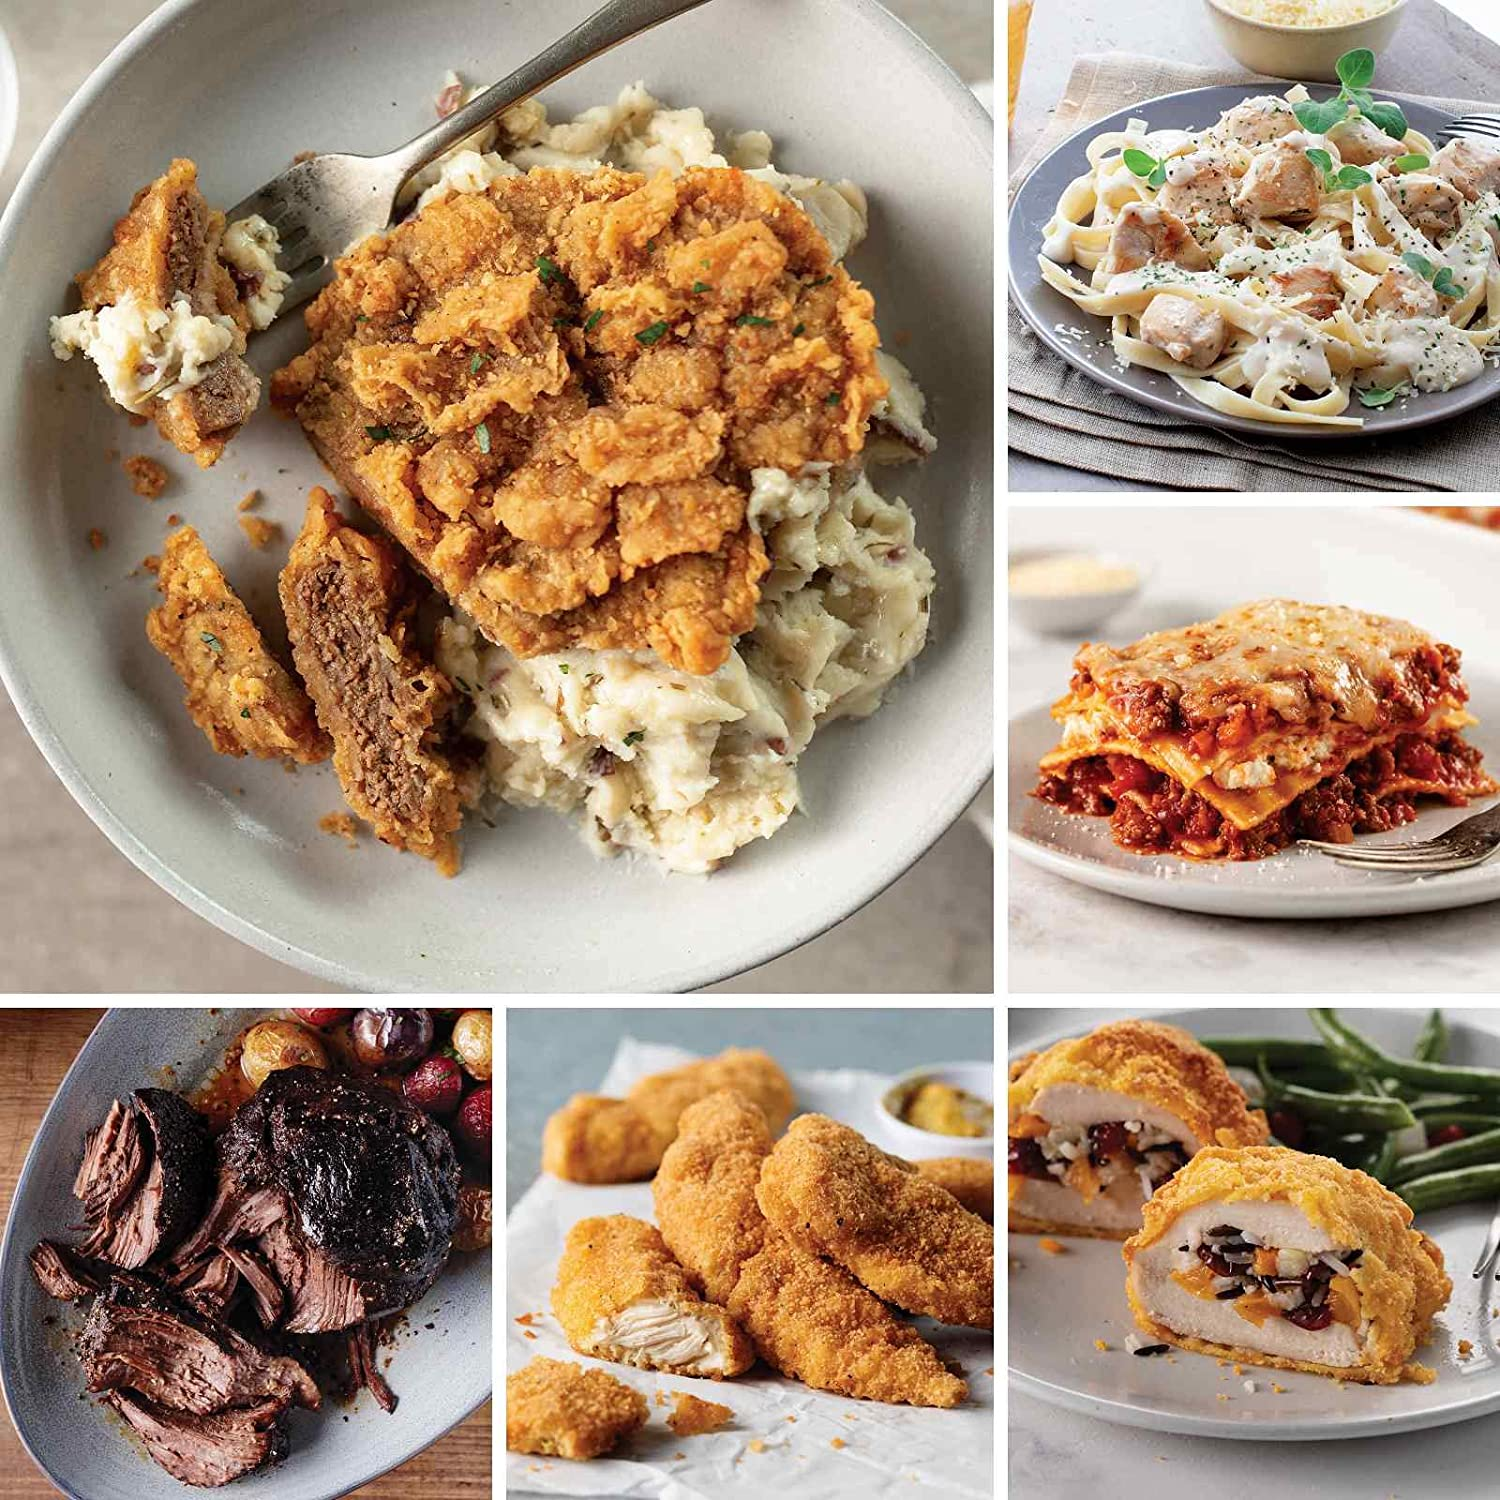 Great Meals Assortment from Omaha Steaks (Chicken Fried Steaks, Fully Cooked Pot Roast, Italian Chicken Fingers, Stuffed Chicken with Wild Rice, Meat Lover's Lasagna, and more)